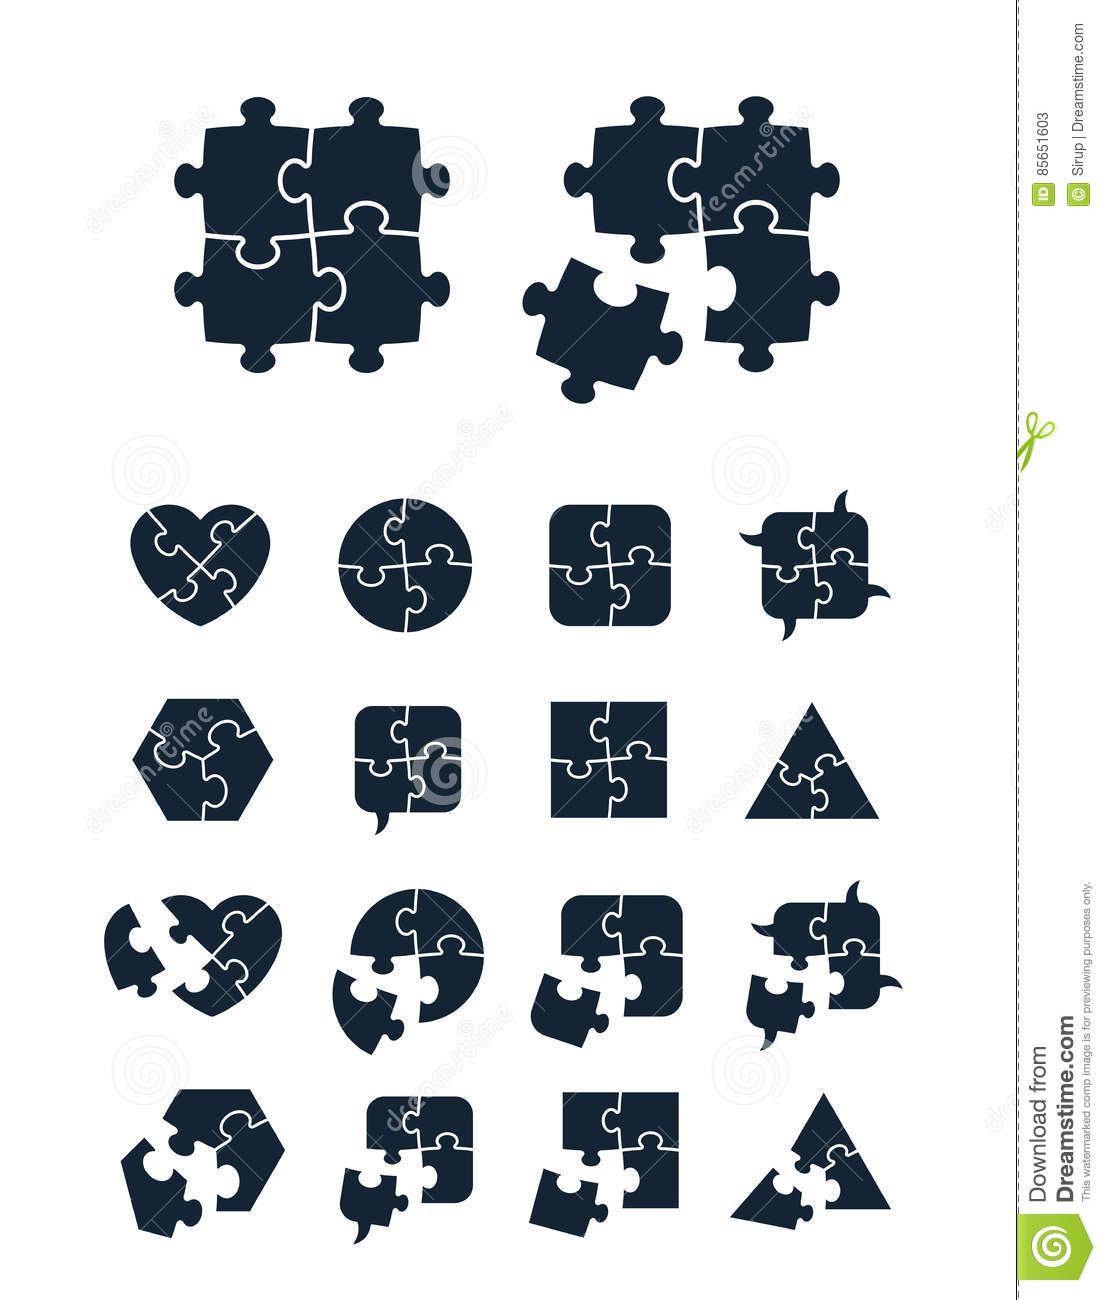 Jigsaw Puzzle Icons Collection Stock Vector - Illustration ...